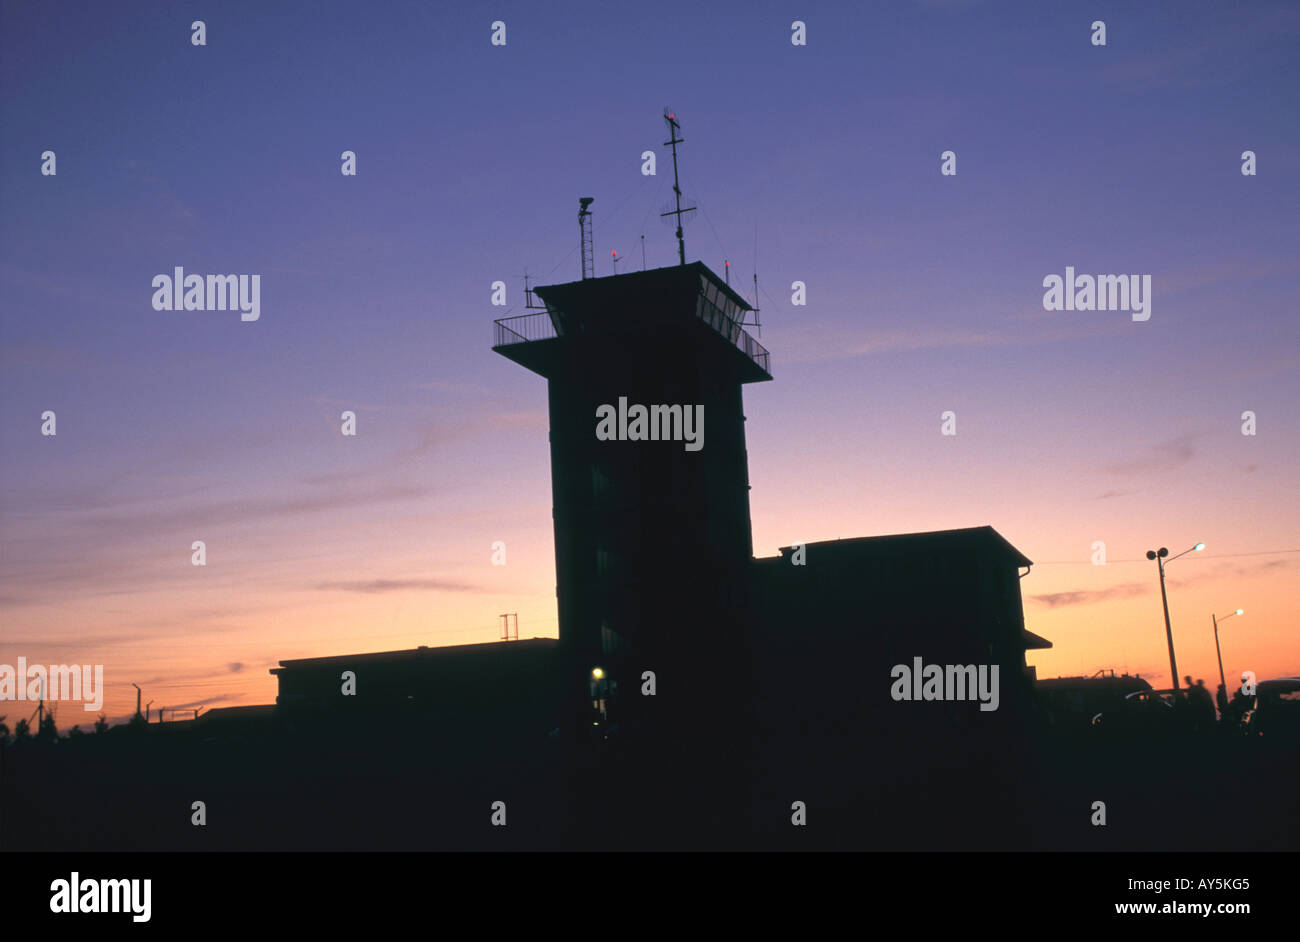 Aerial Transport Control Tower Fr Aerial Transport Control Tower no model or property release - Stock Image